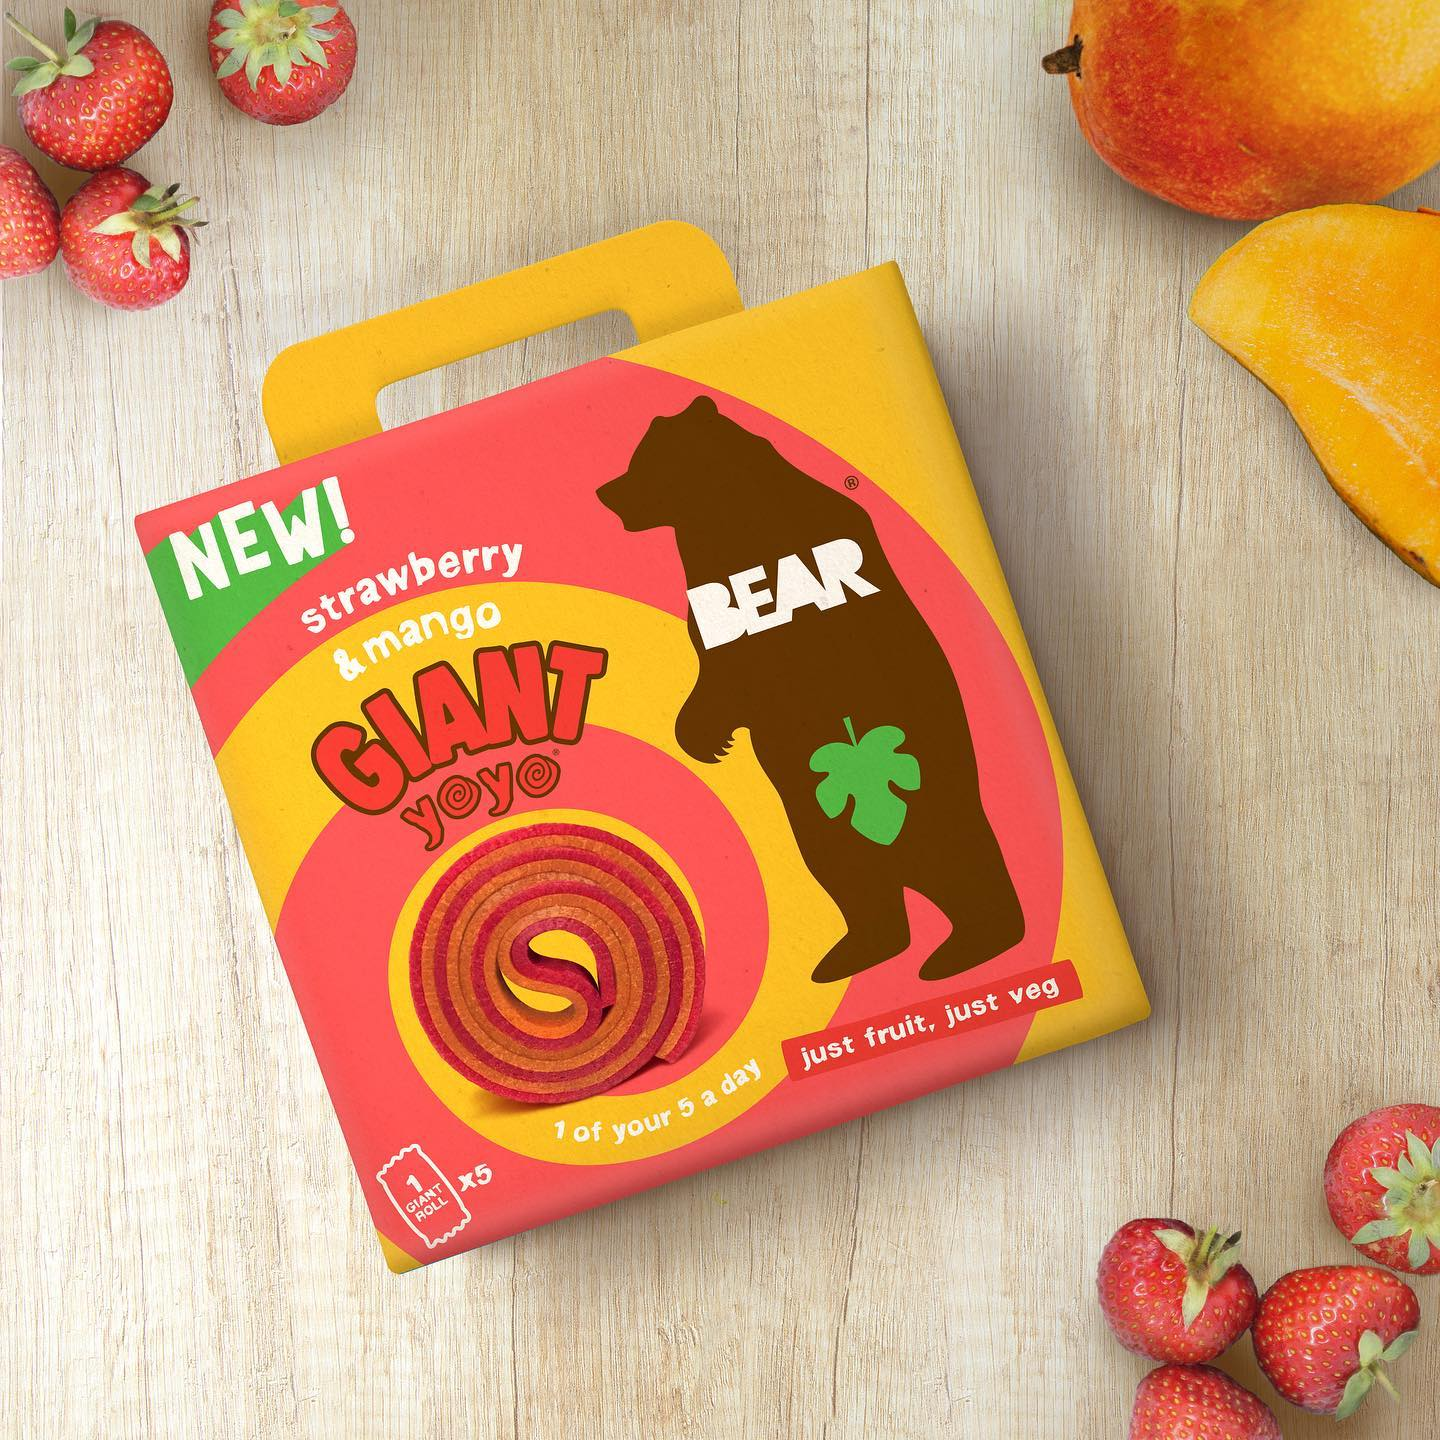 Get your paws on our GIANT yoyos, now available in @tescofood - double the flavour, double the fun! 🐻🍓🥭 ⁣ #BackToSchoolWithBEAR #BEARyoyos #RealFruit #RealFlavour #RealFun